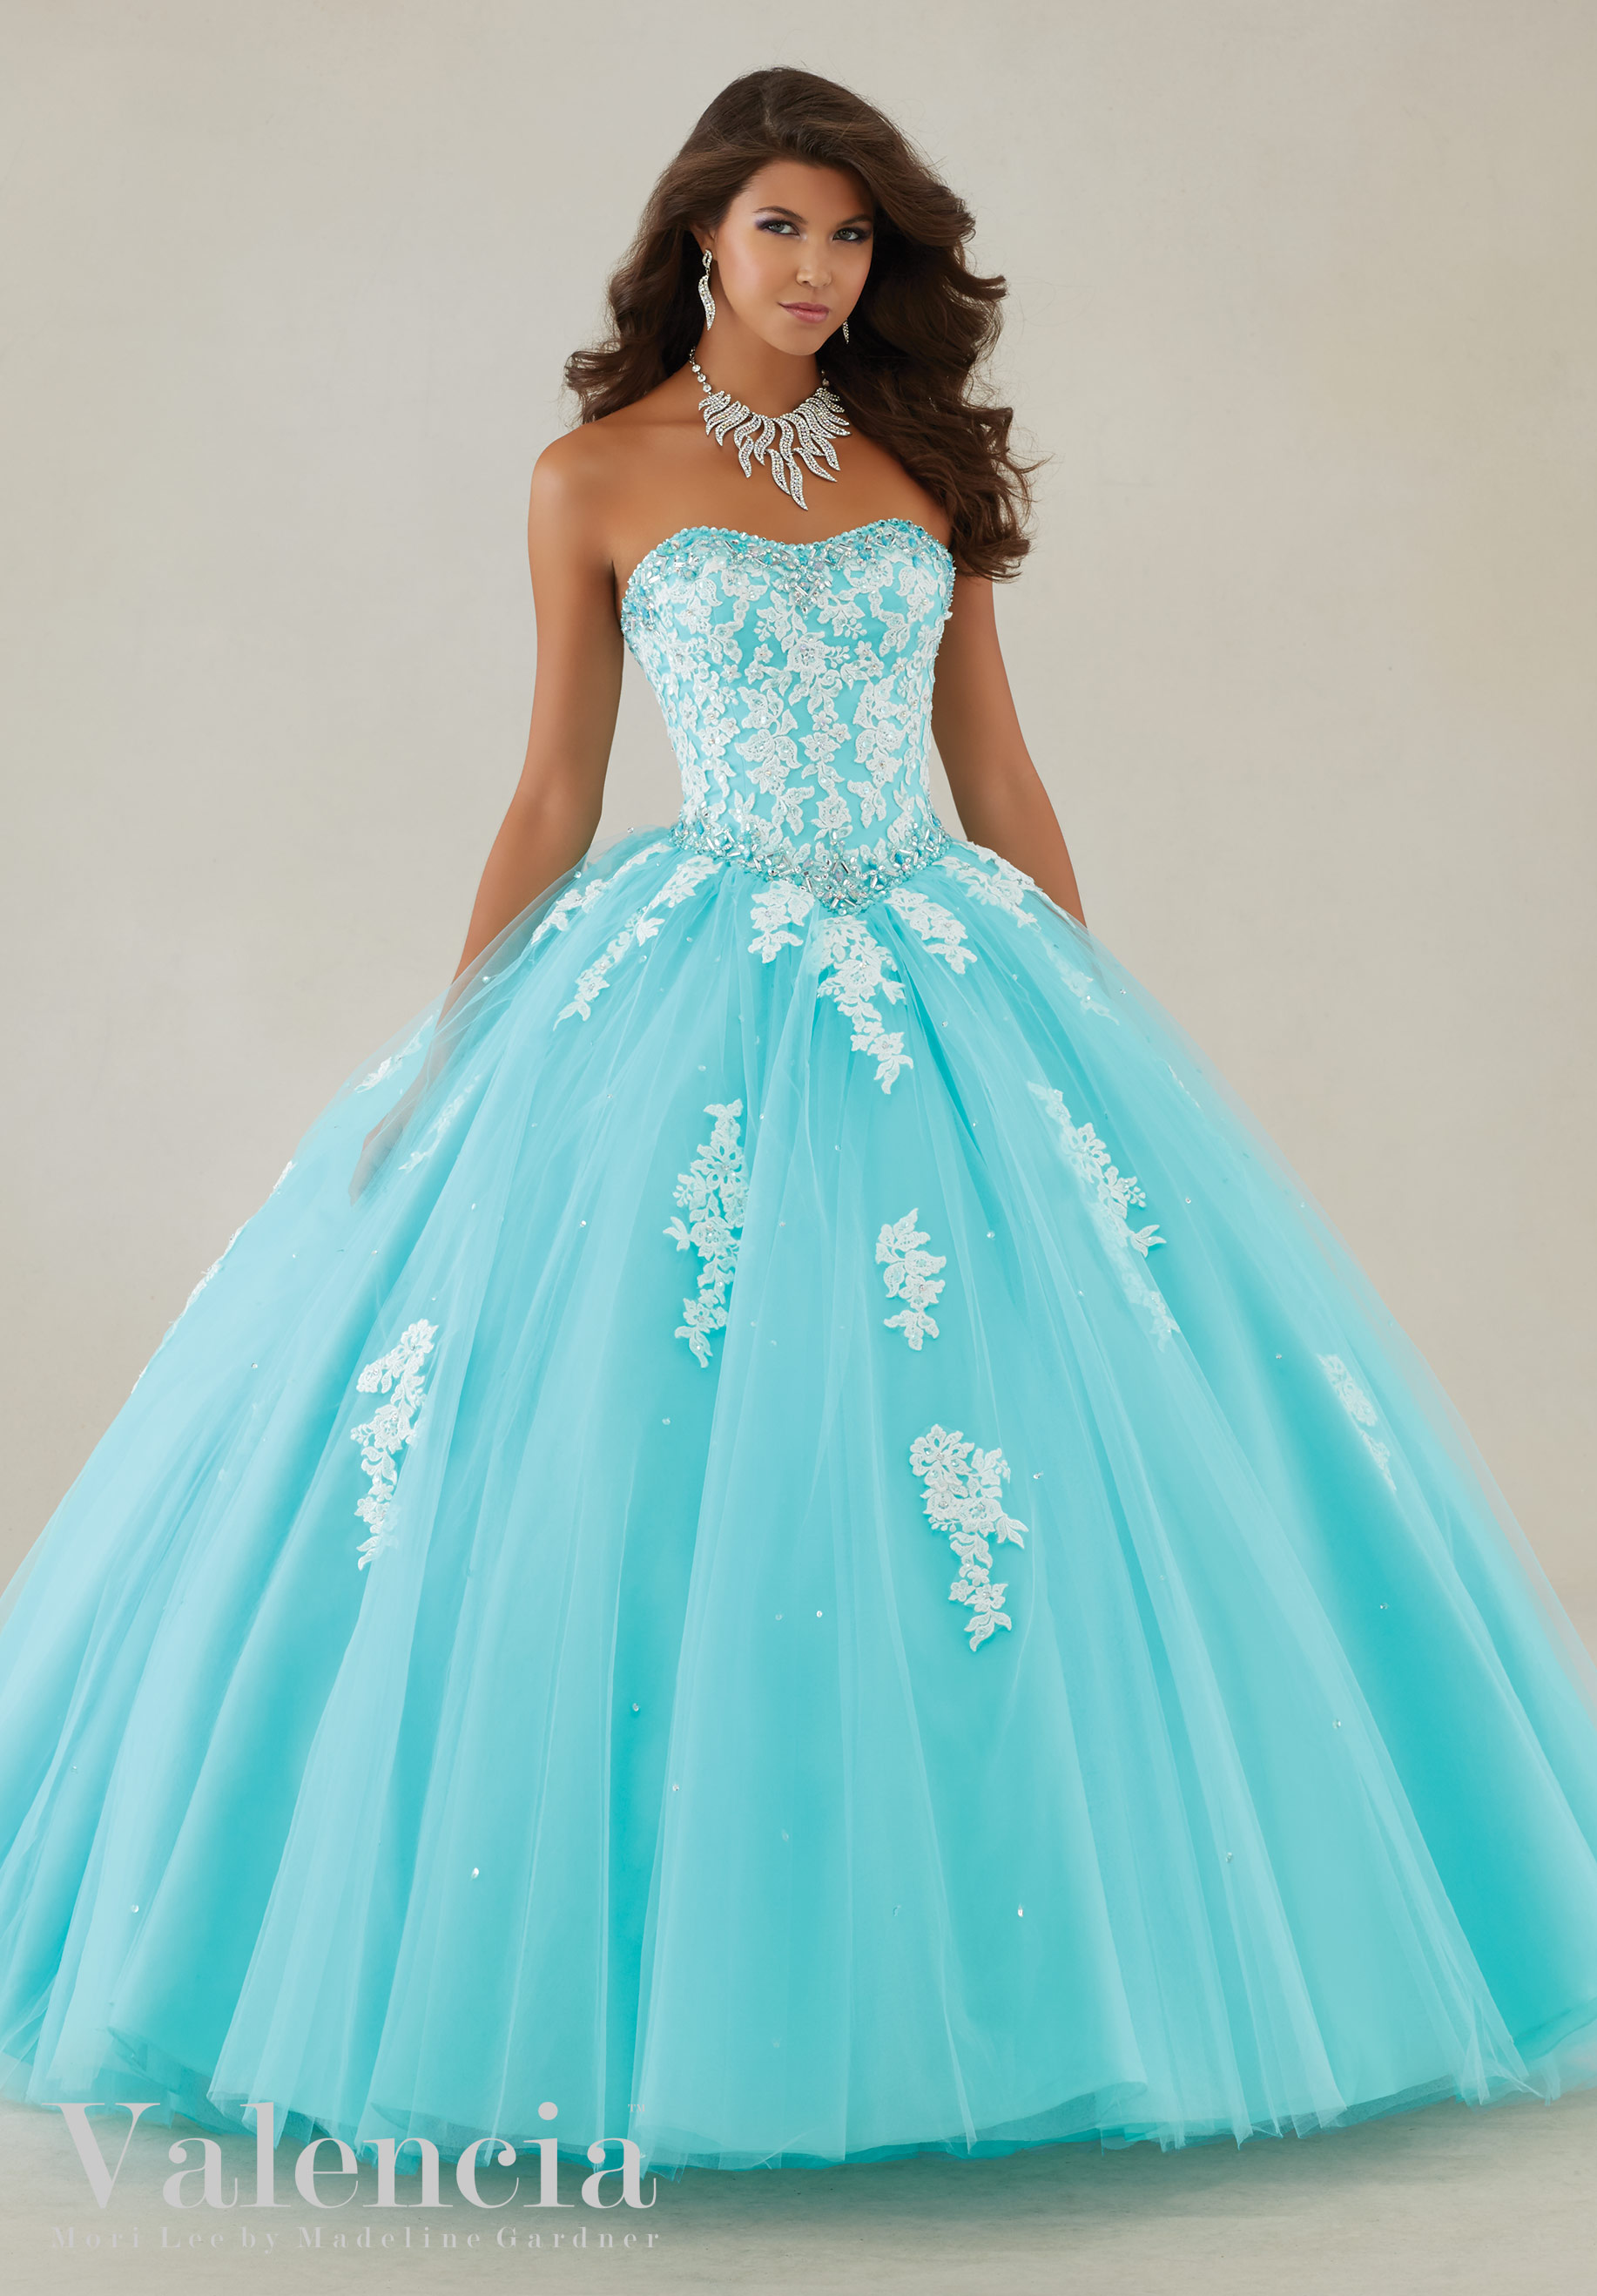 5304e16e2 Quinceañera Dresses – Celebrations de todo